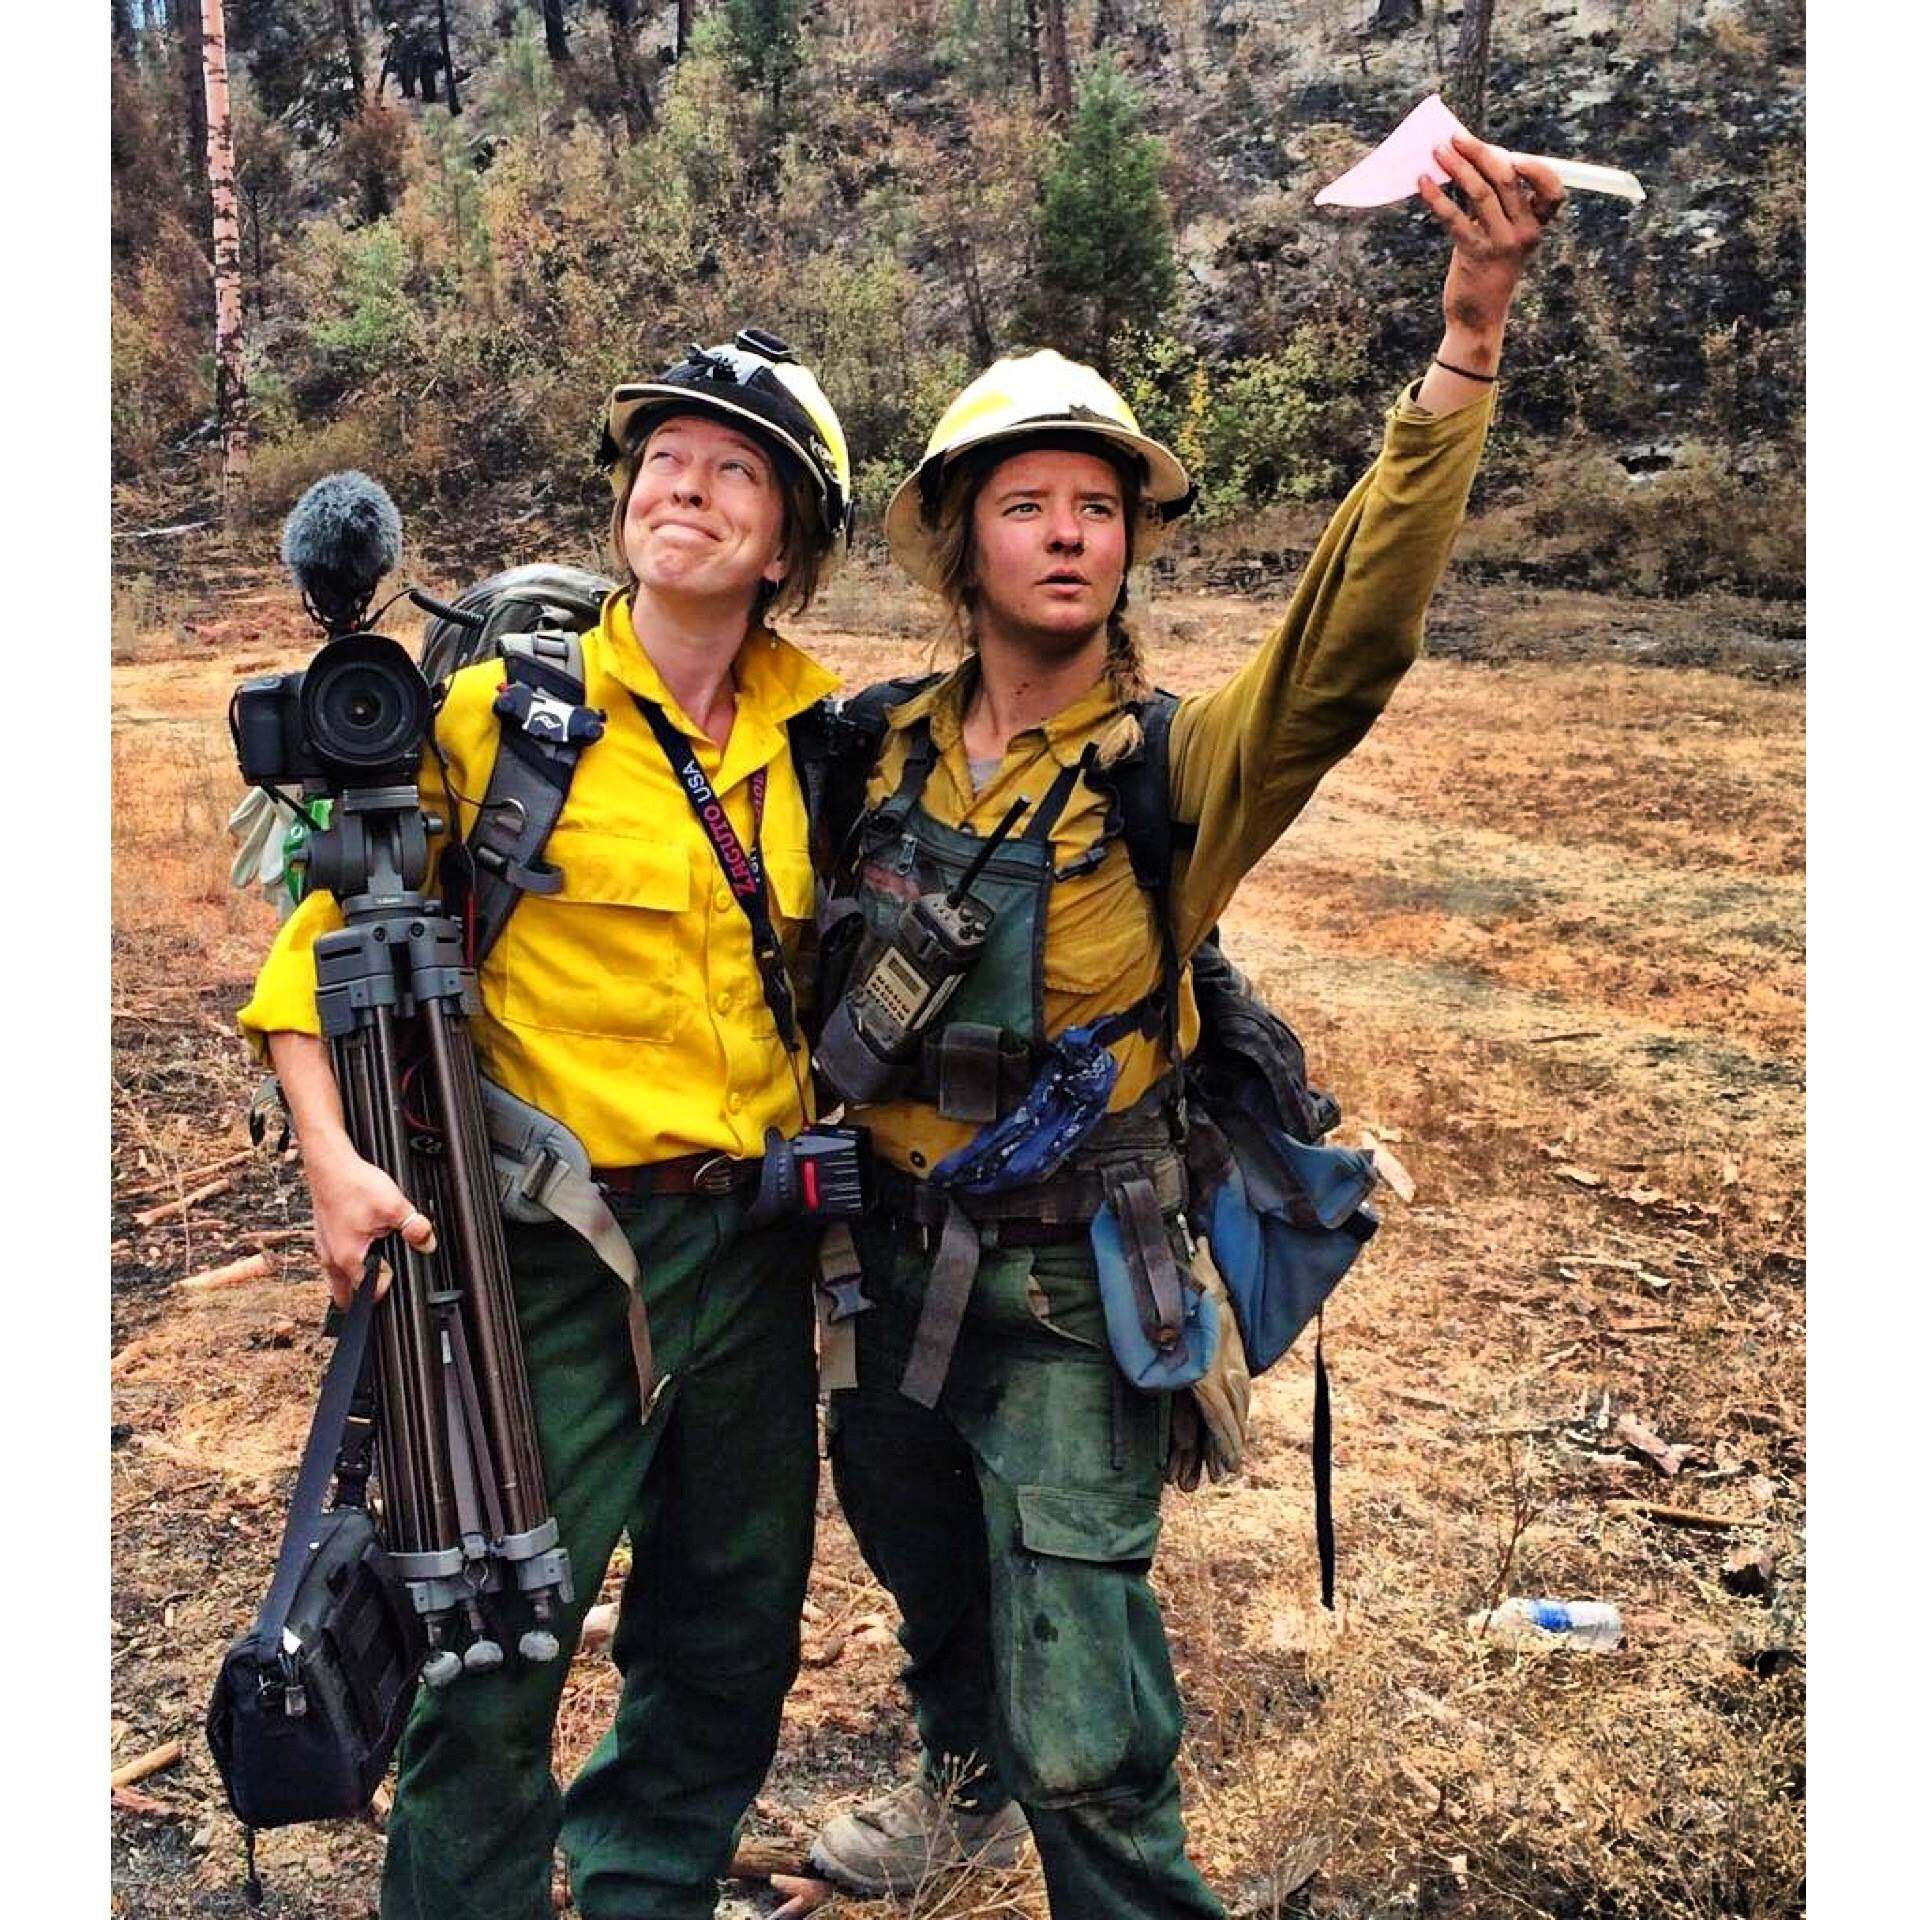 S filming wildfire crew.jpg